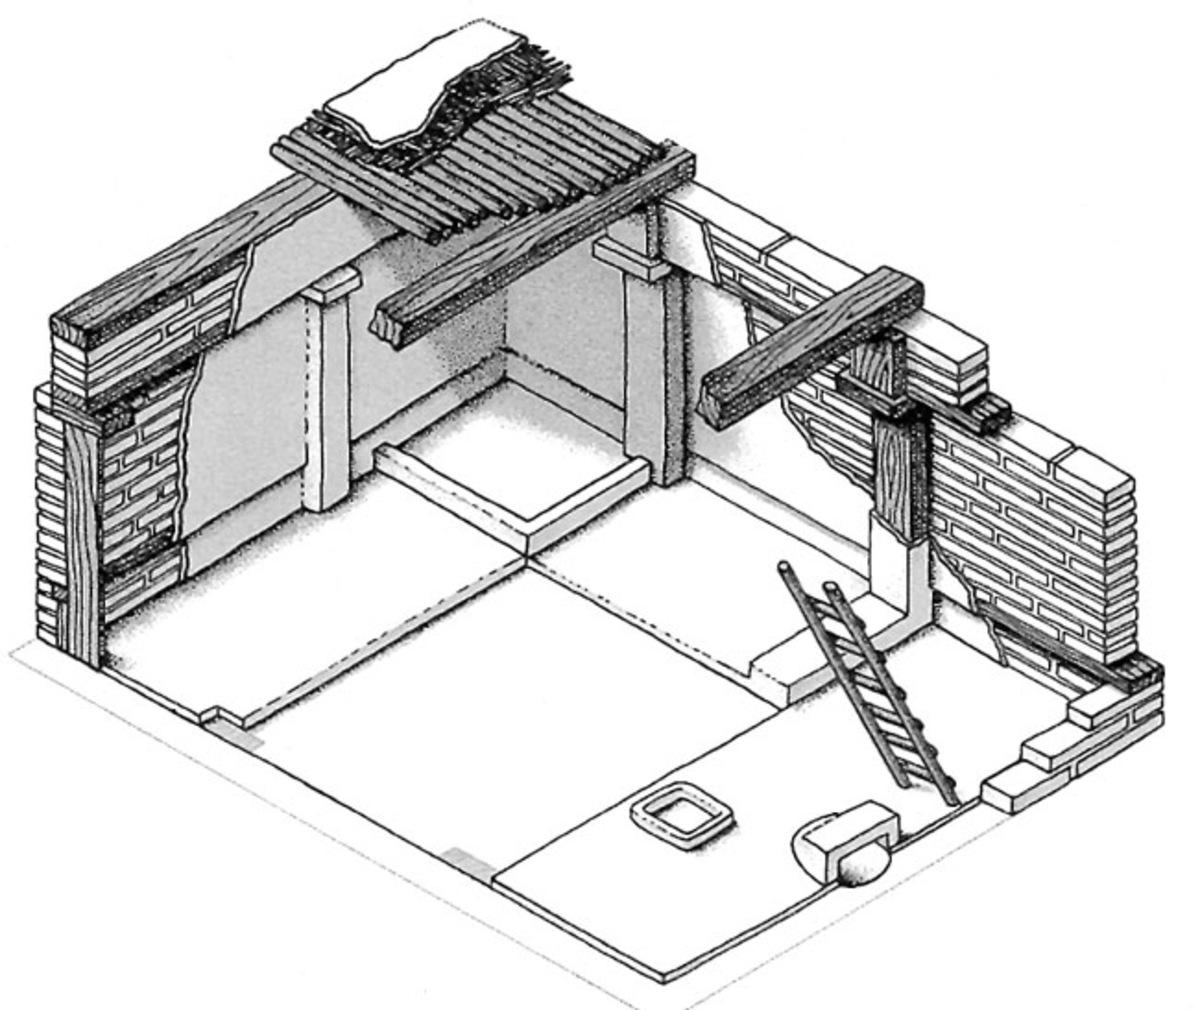 Fig 5. Artistic rendering of an unearthed Catal Hoyuk dwelling.